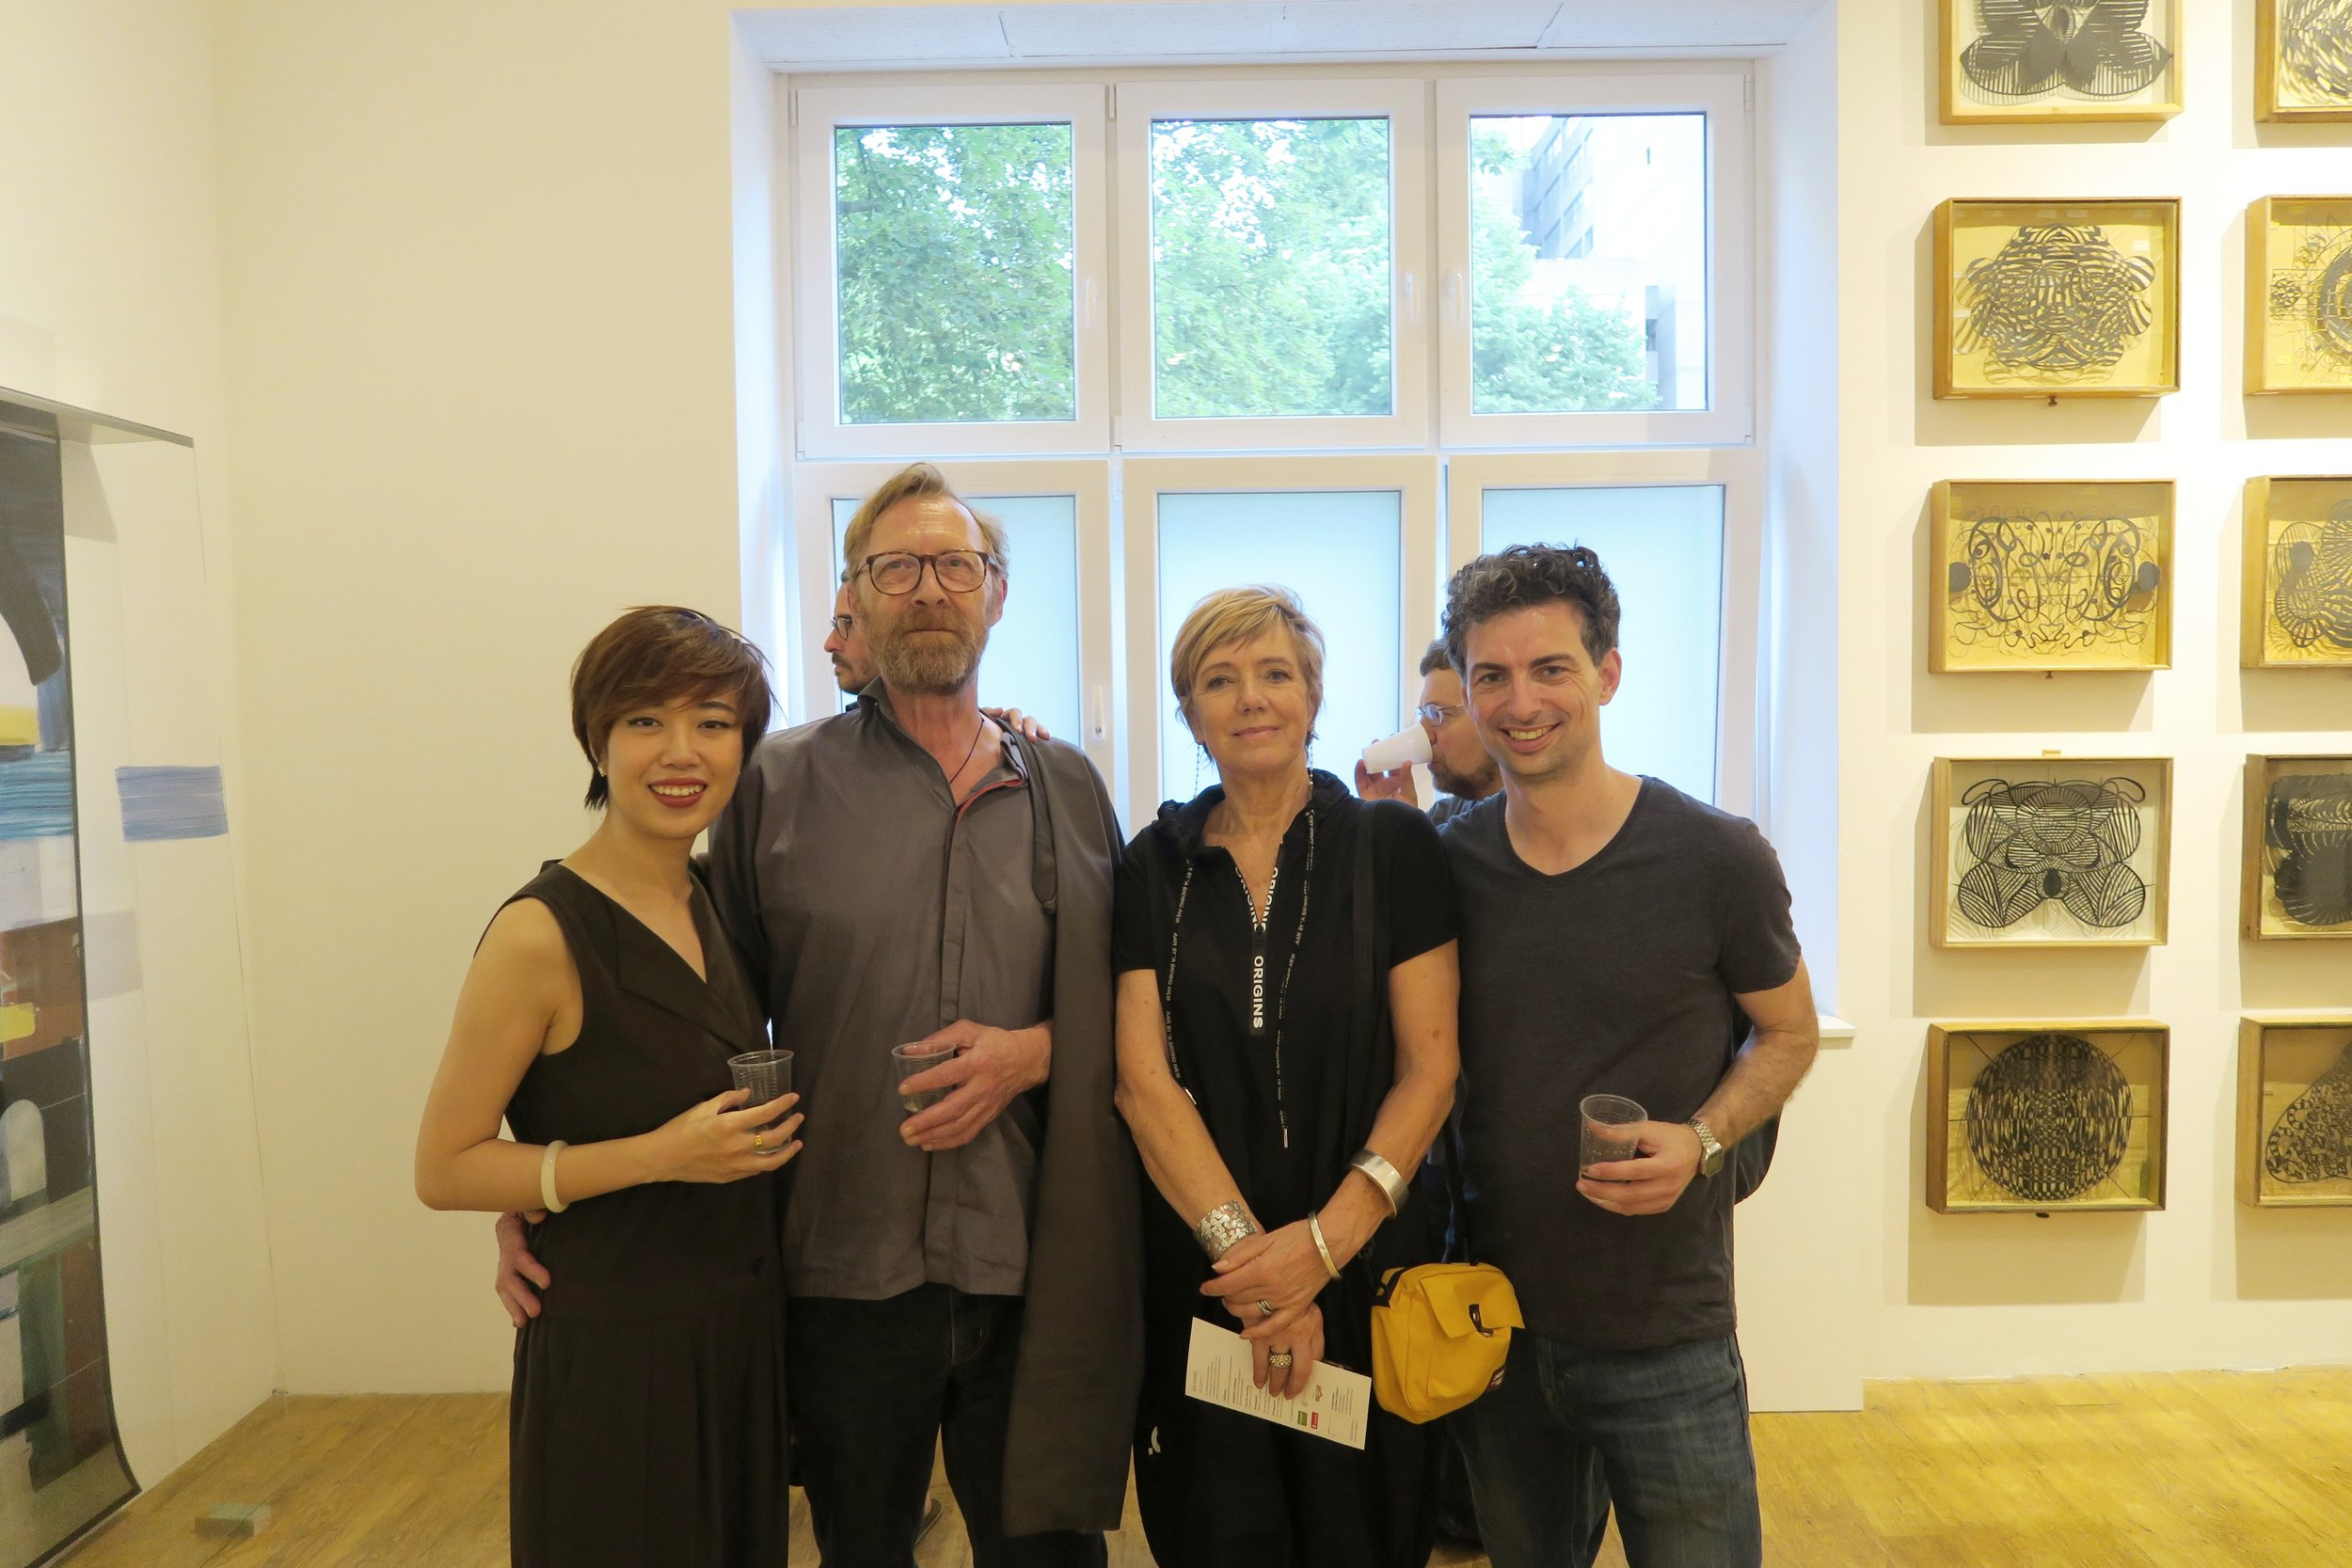 Myself, Poul Weile, Jacqueline Heer, Adrian Pocobelli (left to right)